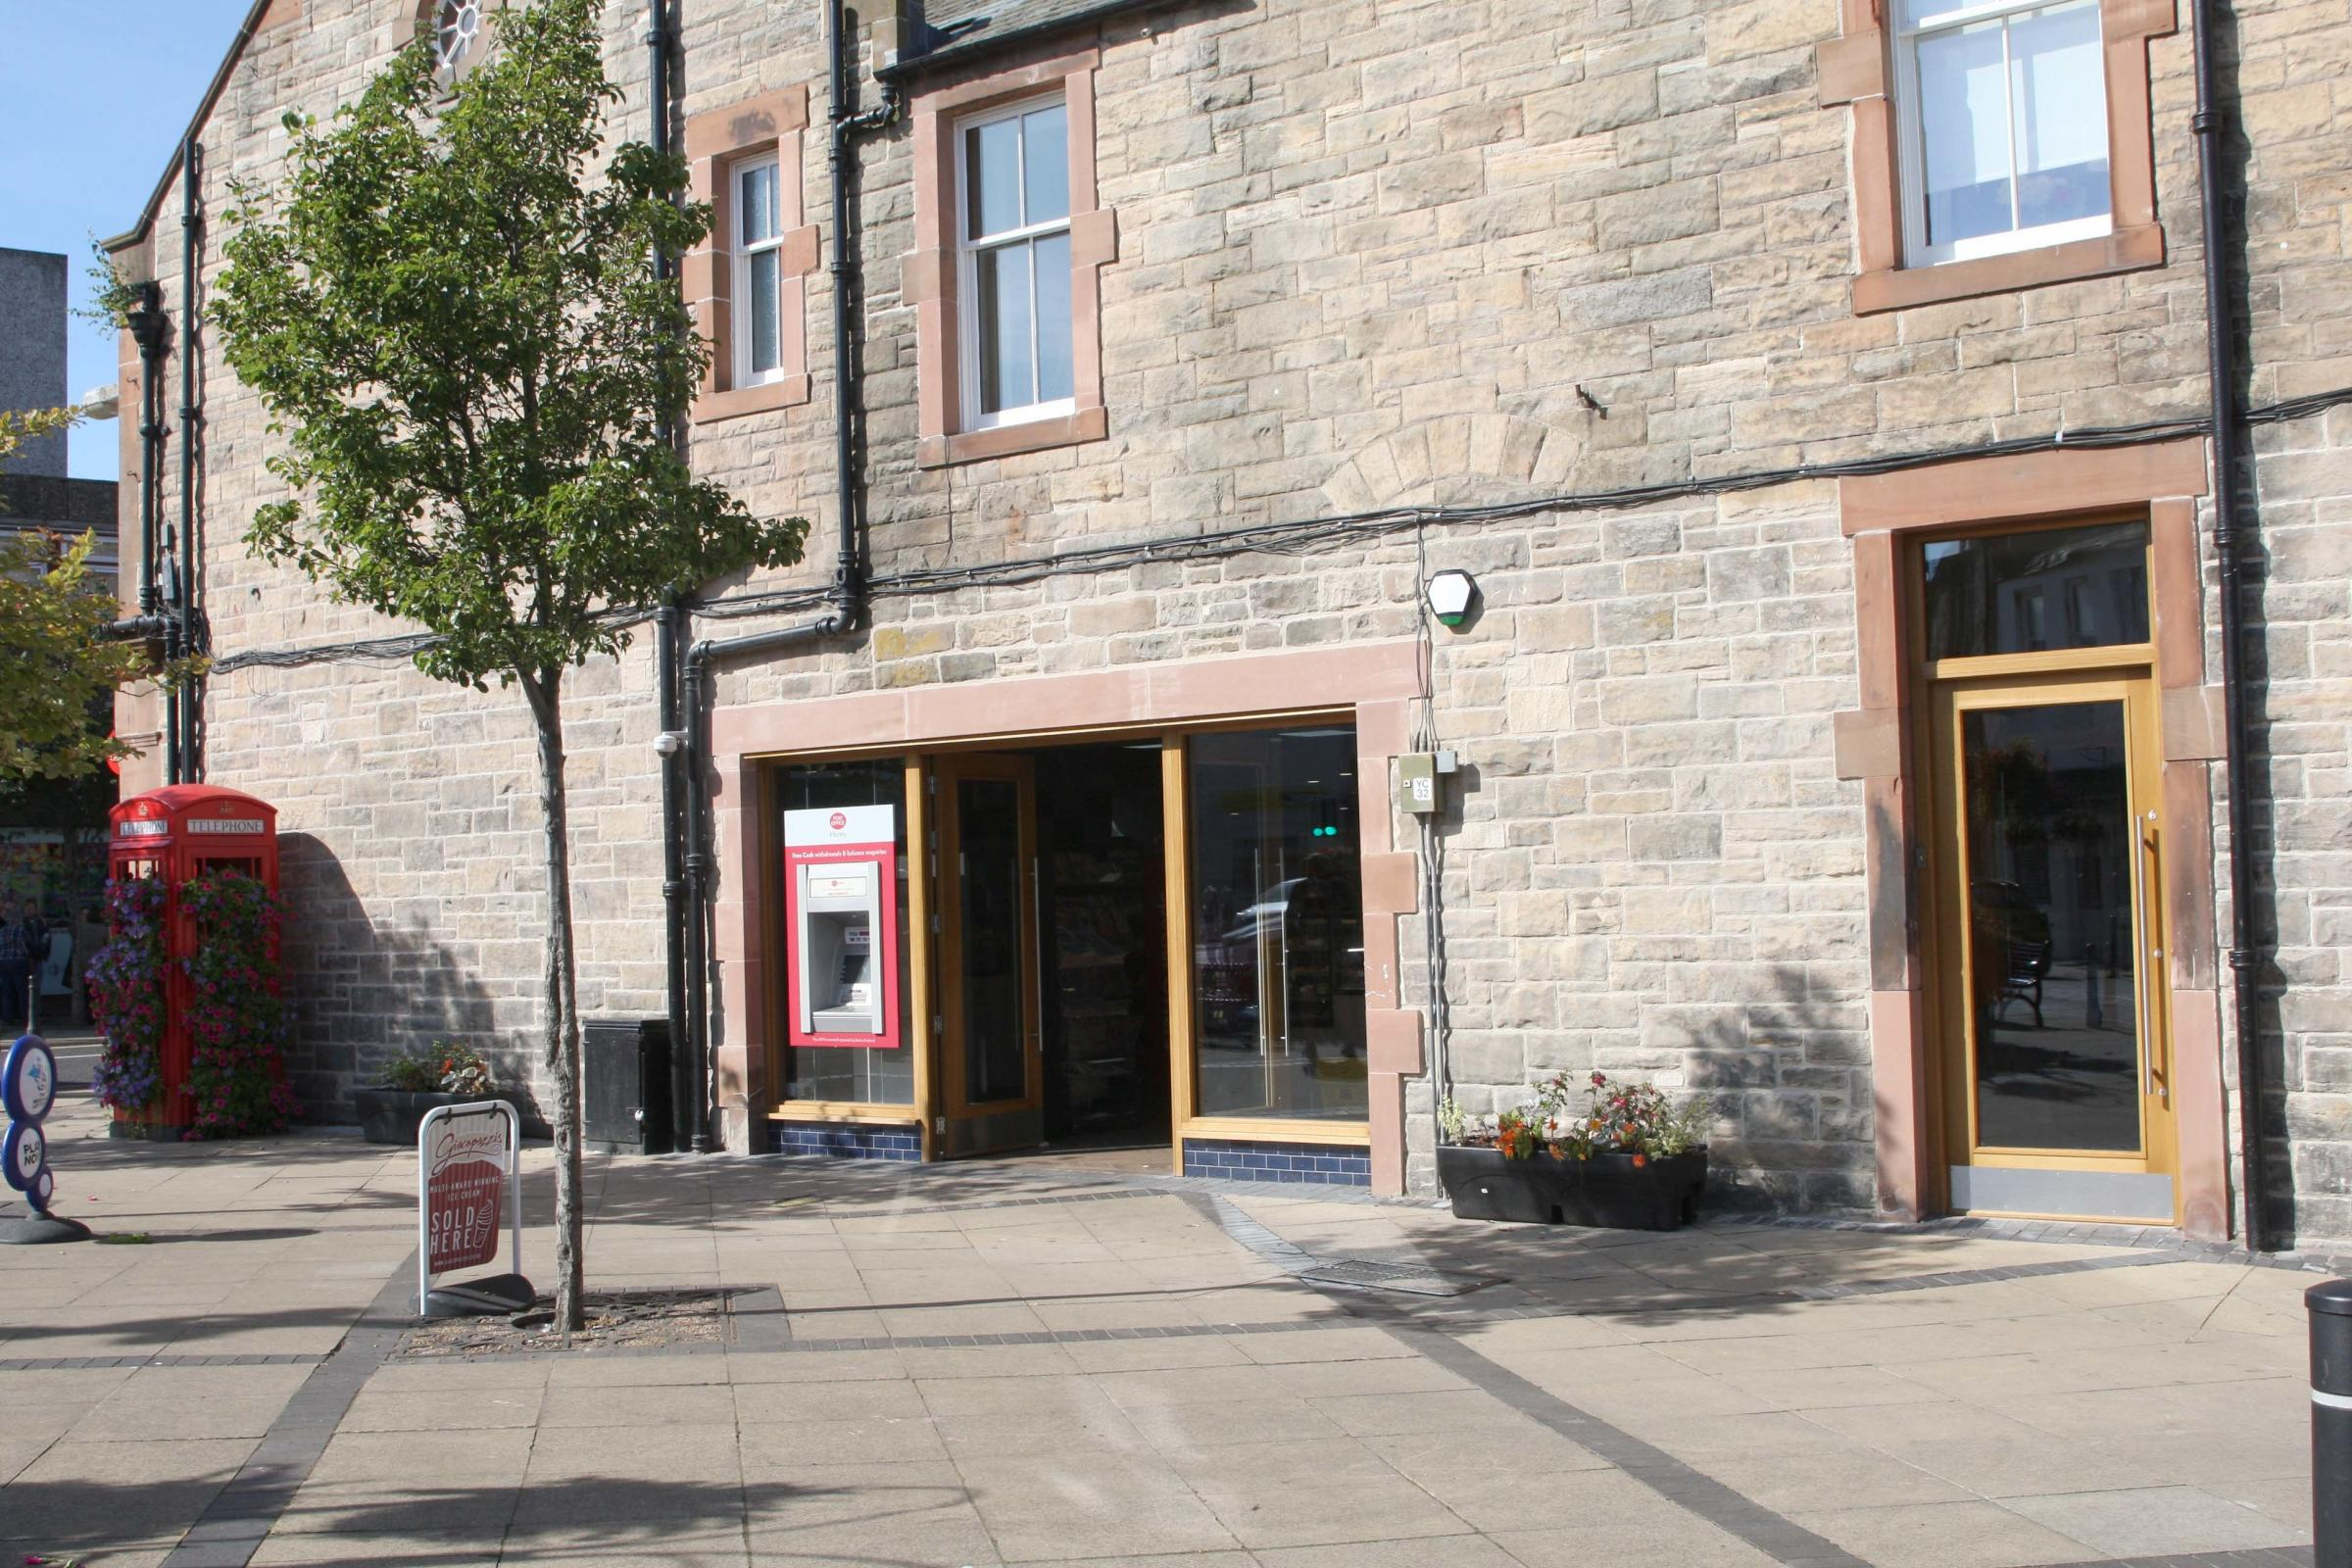 Volatile town centre' fears allayed as new cafe opens in Tranent | East Lothian Courier